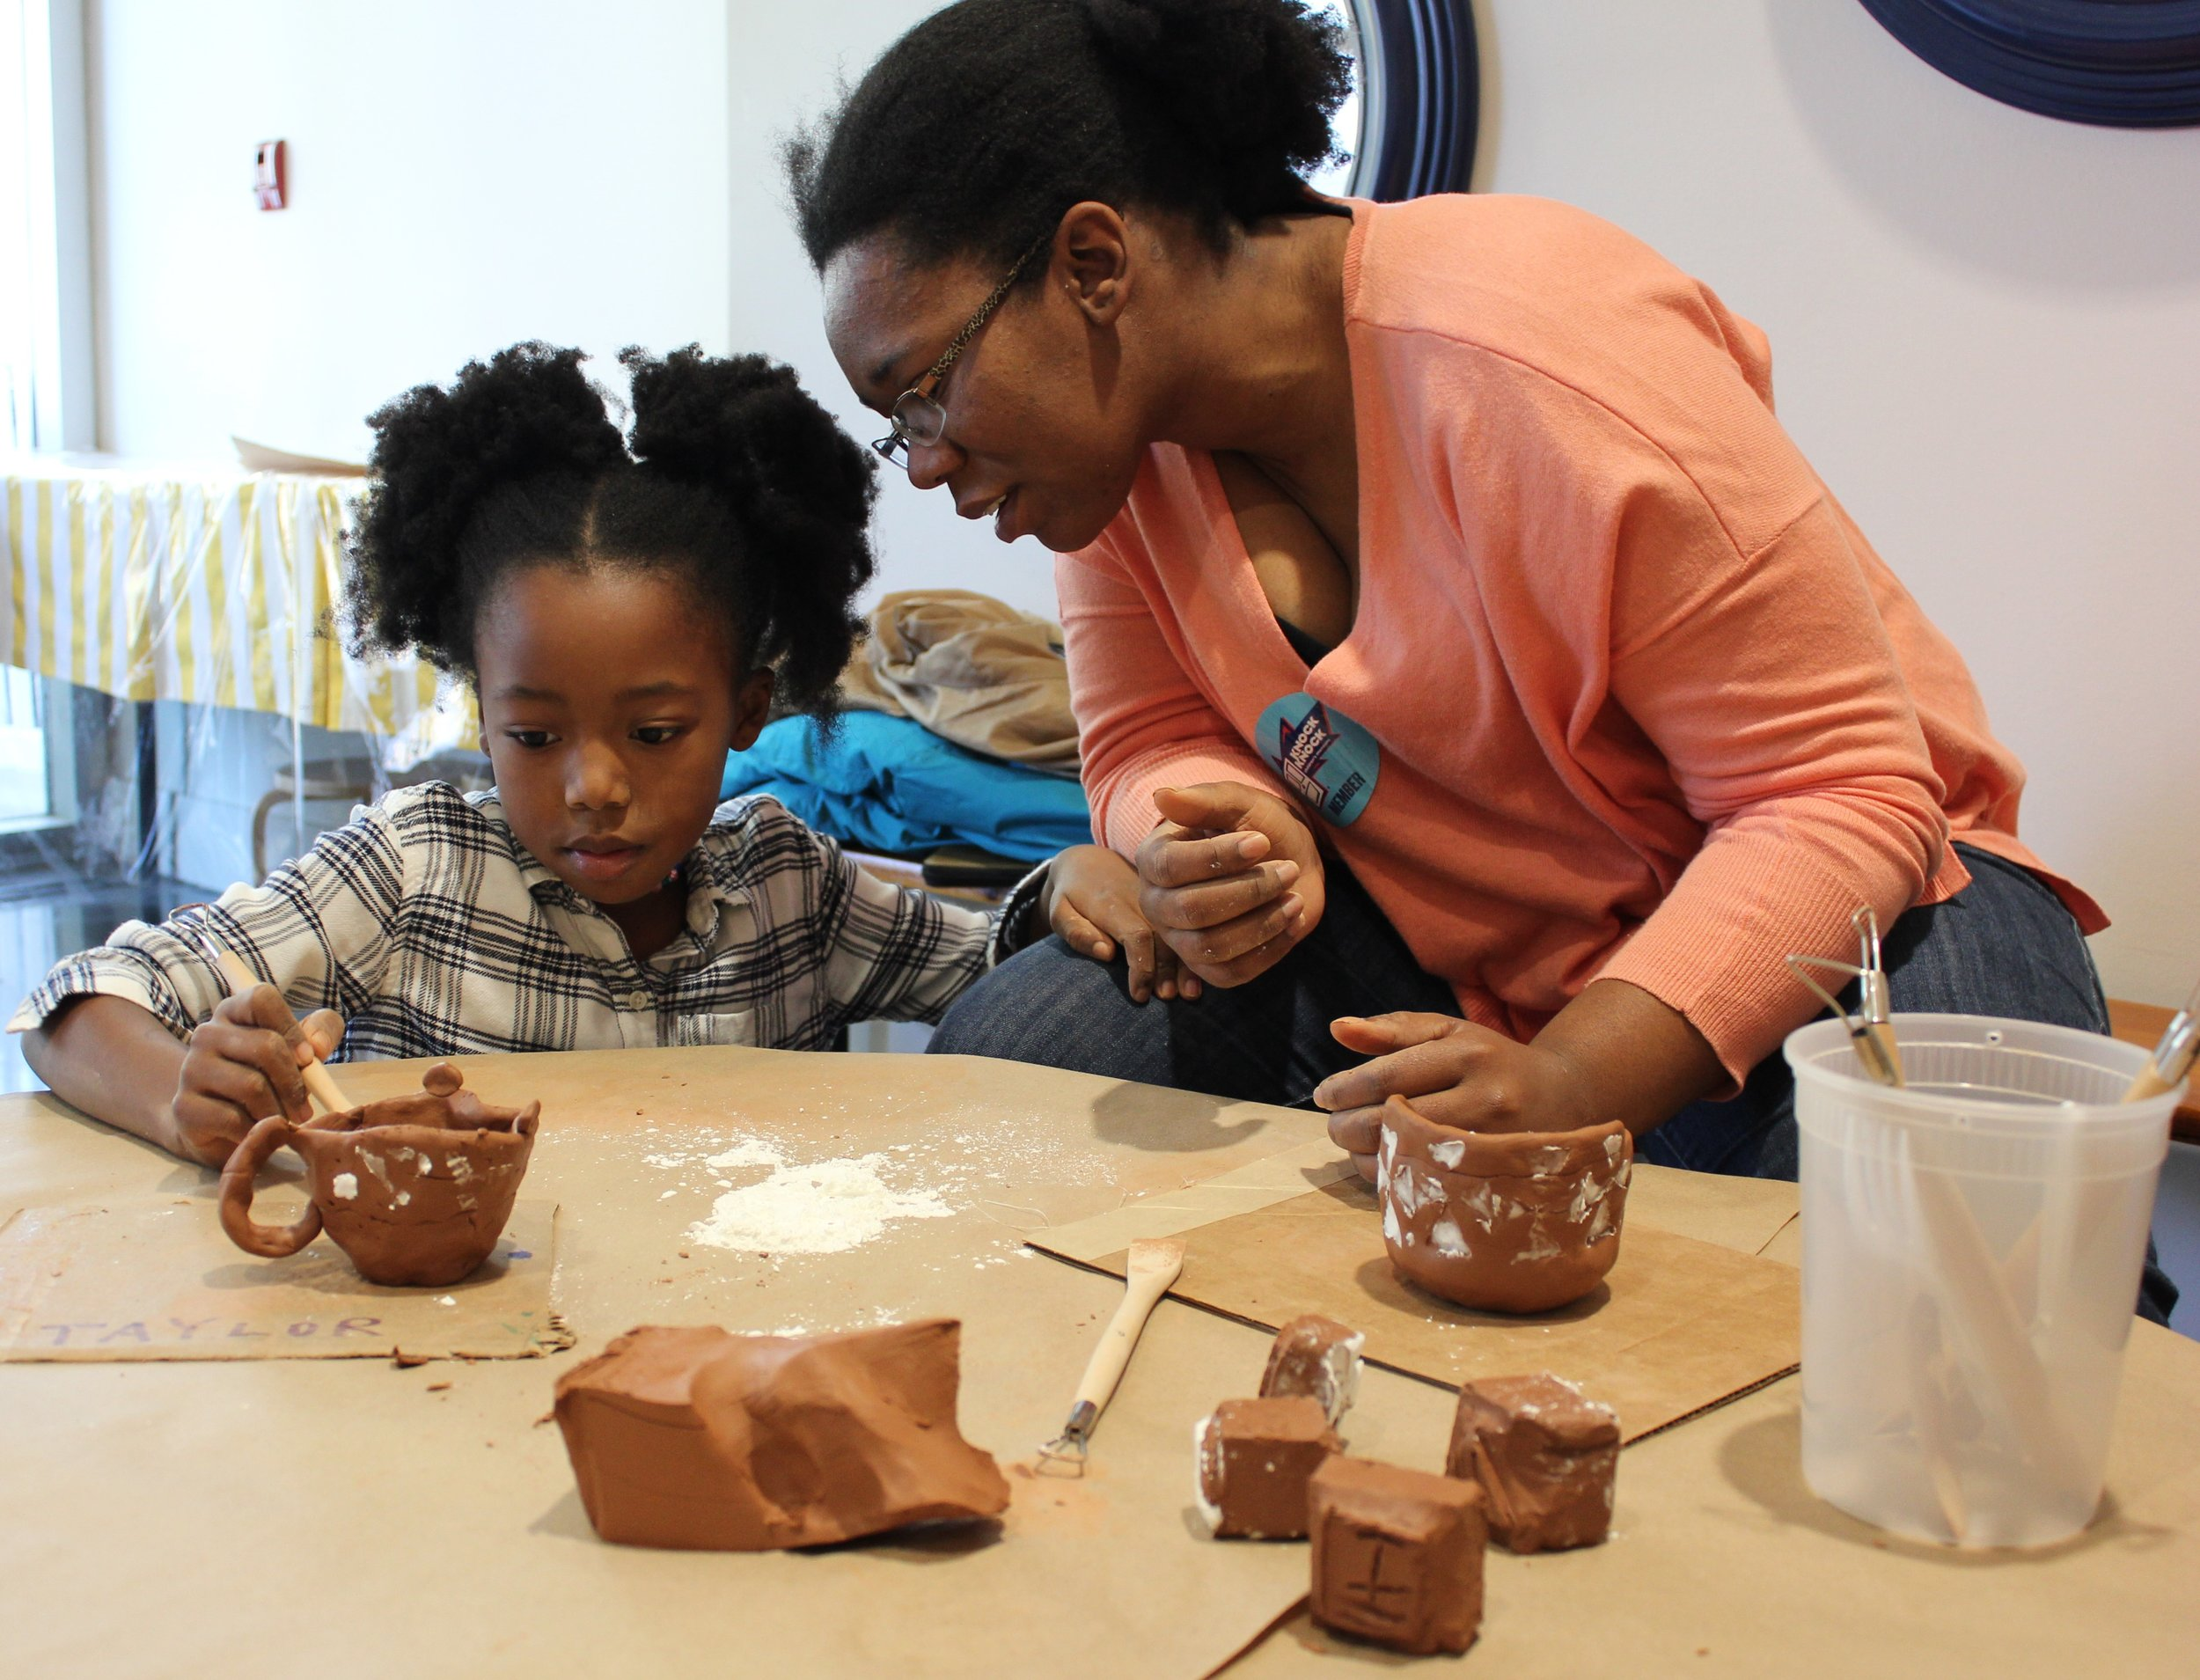 Terracotta Textures - Saturday, January 19, 2019Studio potter and teaching artist Osa Atoe explores all things lumpy, bumpy, and smooth with terra cotta clay. Children will use artist-quality tools to carve a stamp to create geometric patterns on hand-built clay vessels. Workshops will run from 10:00 a.m. to 2:00 p.m.The Knock Knock Museum, 1900 Dalrymple Dr, Baton Rouge, LA 70808